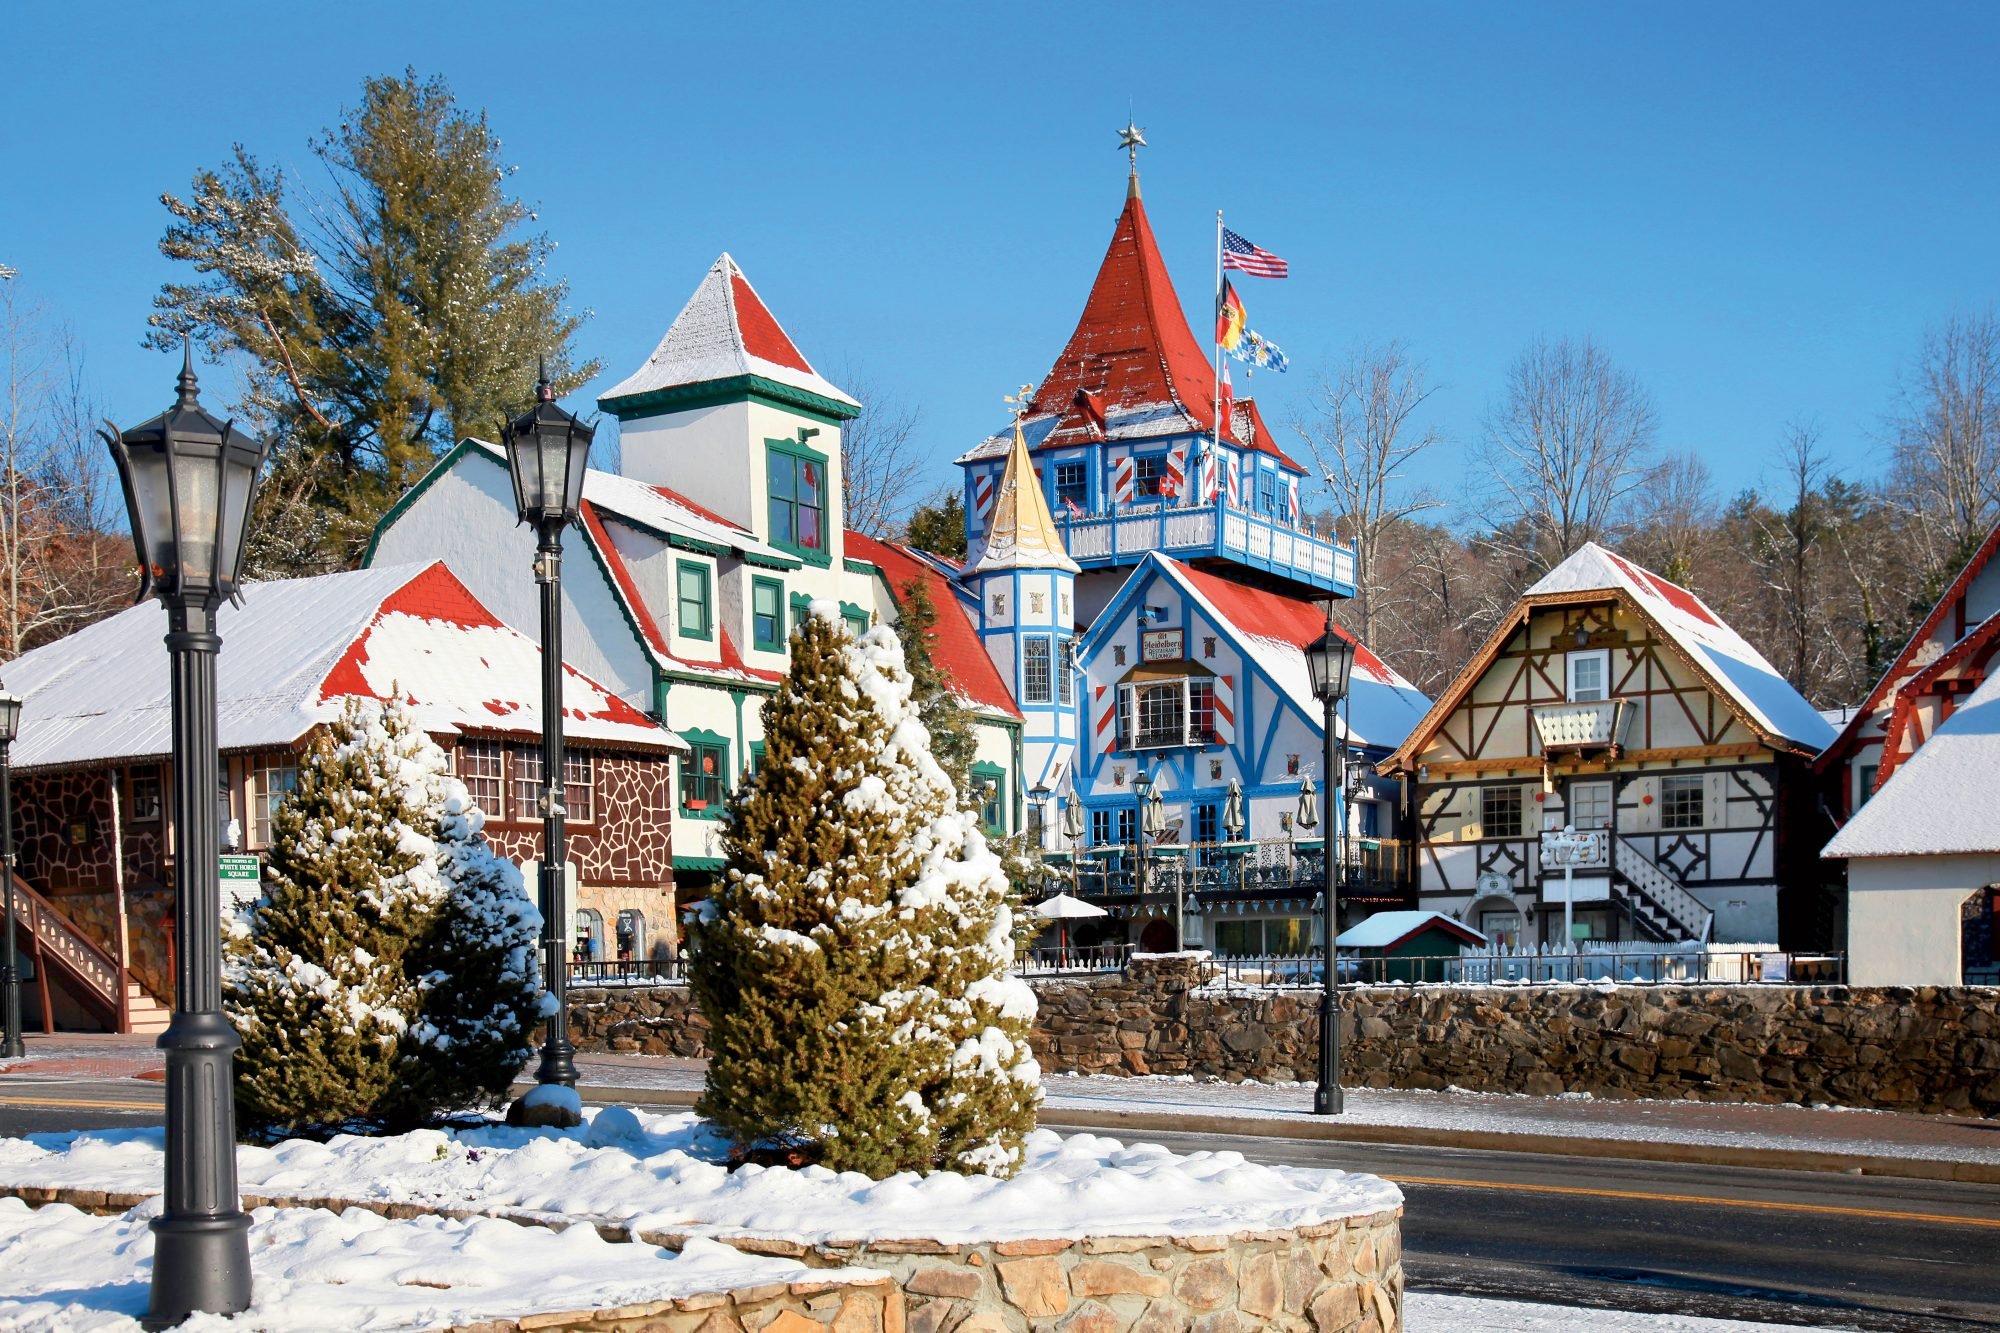 Christmas In Helen Ga 2020 5 Things to Do in Helen, GA for Christmas | Southern Living